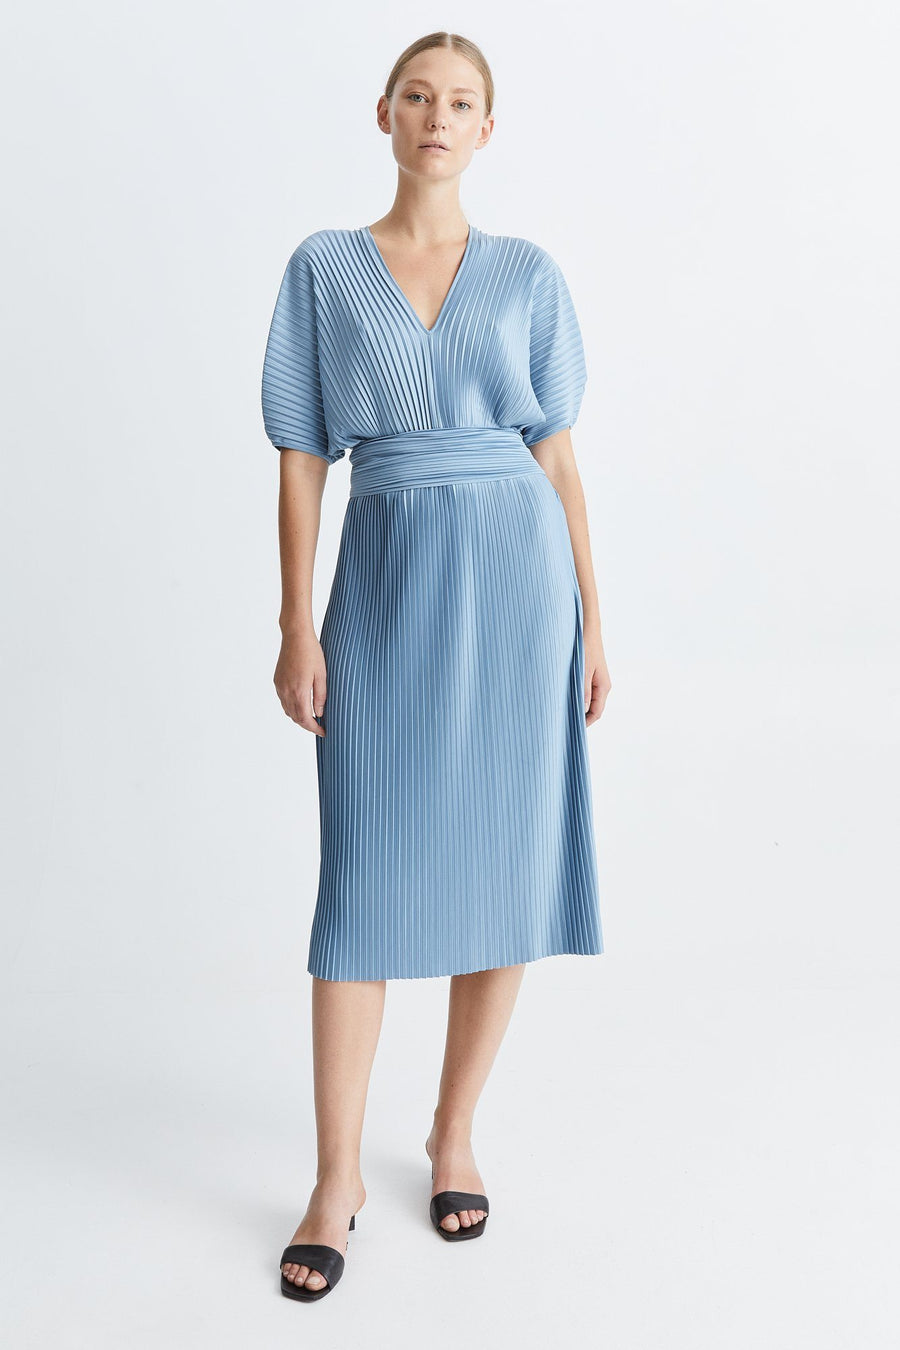 ITACHI DRESS - LIGHT BLUE Dress Stylein